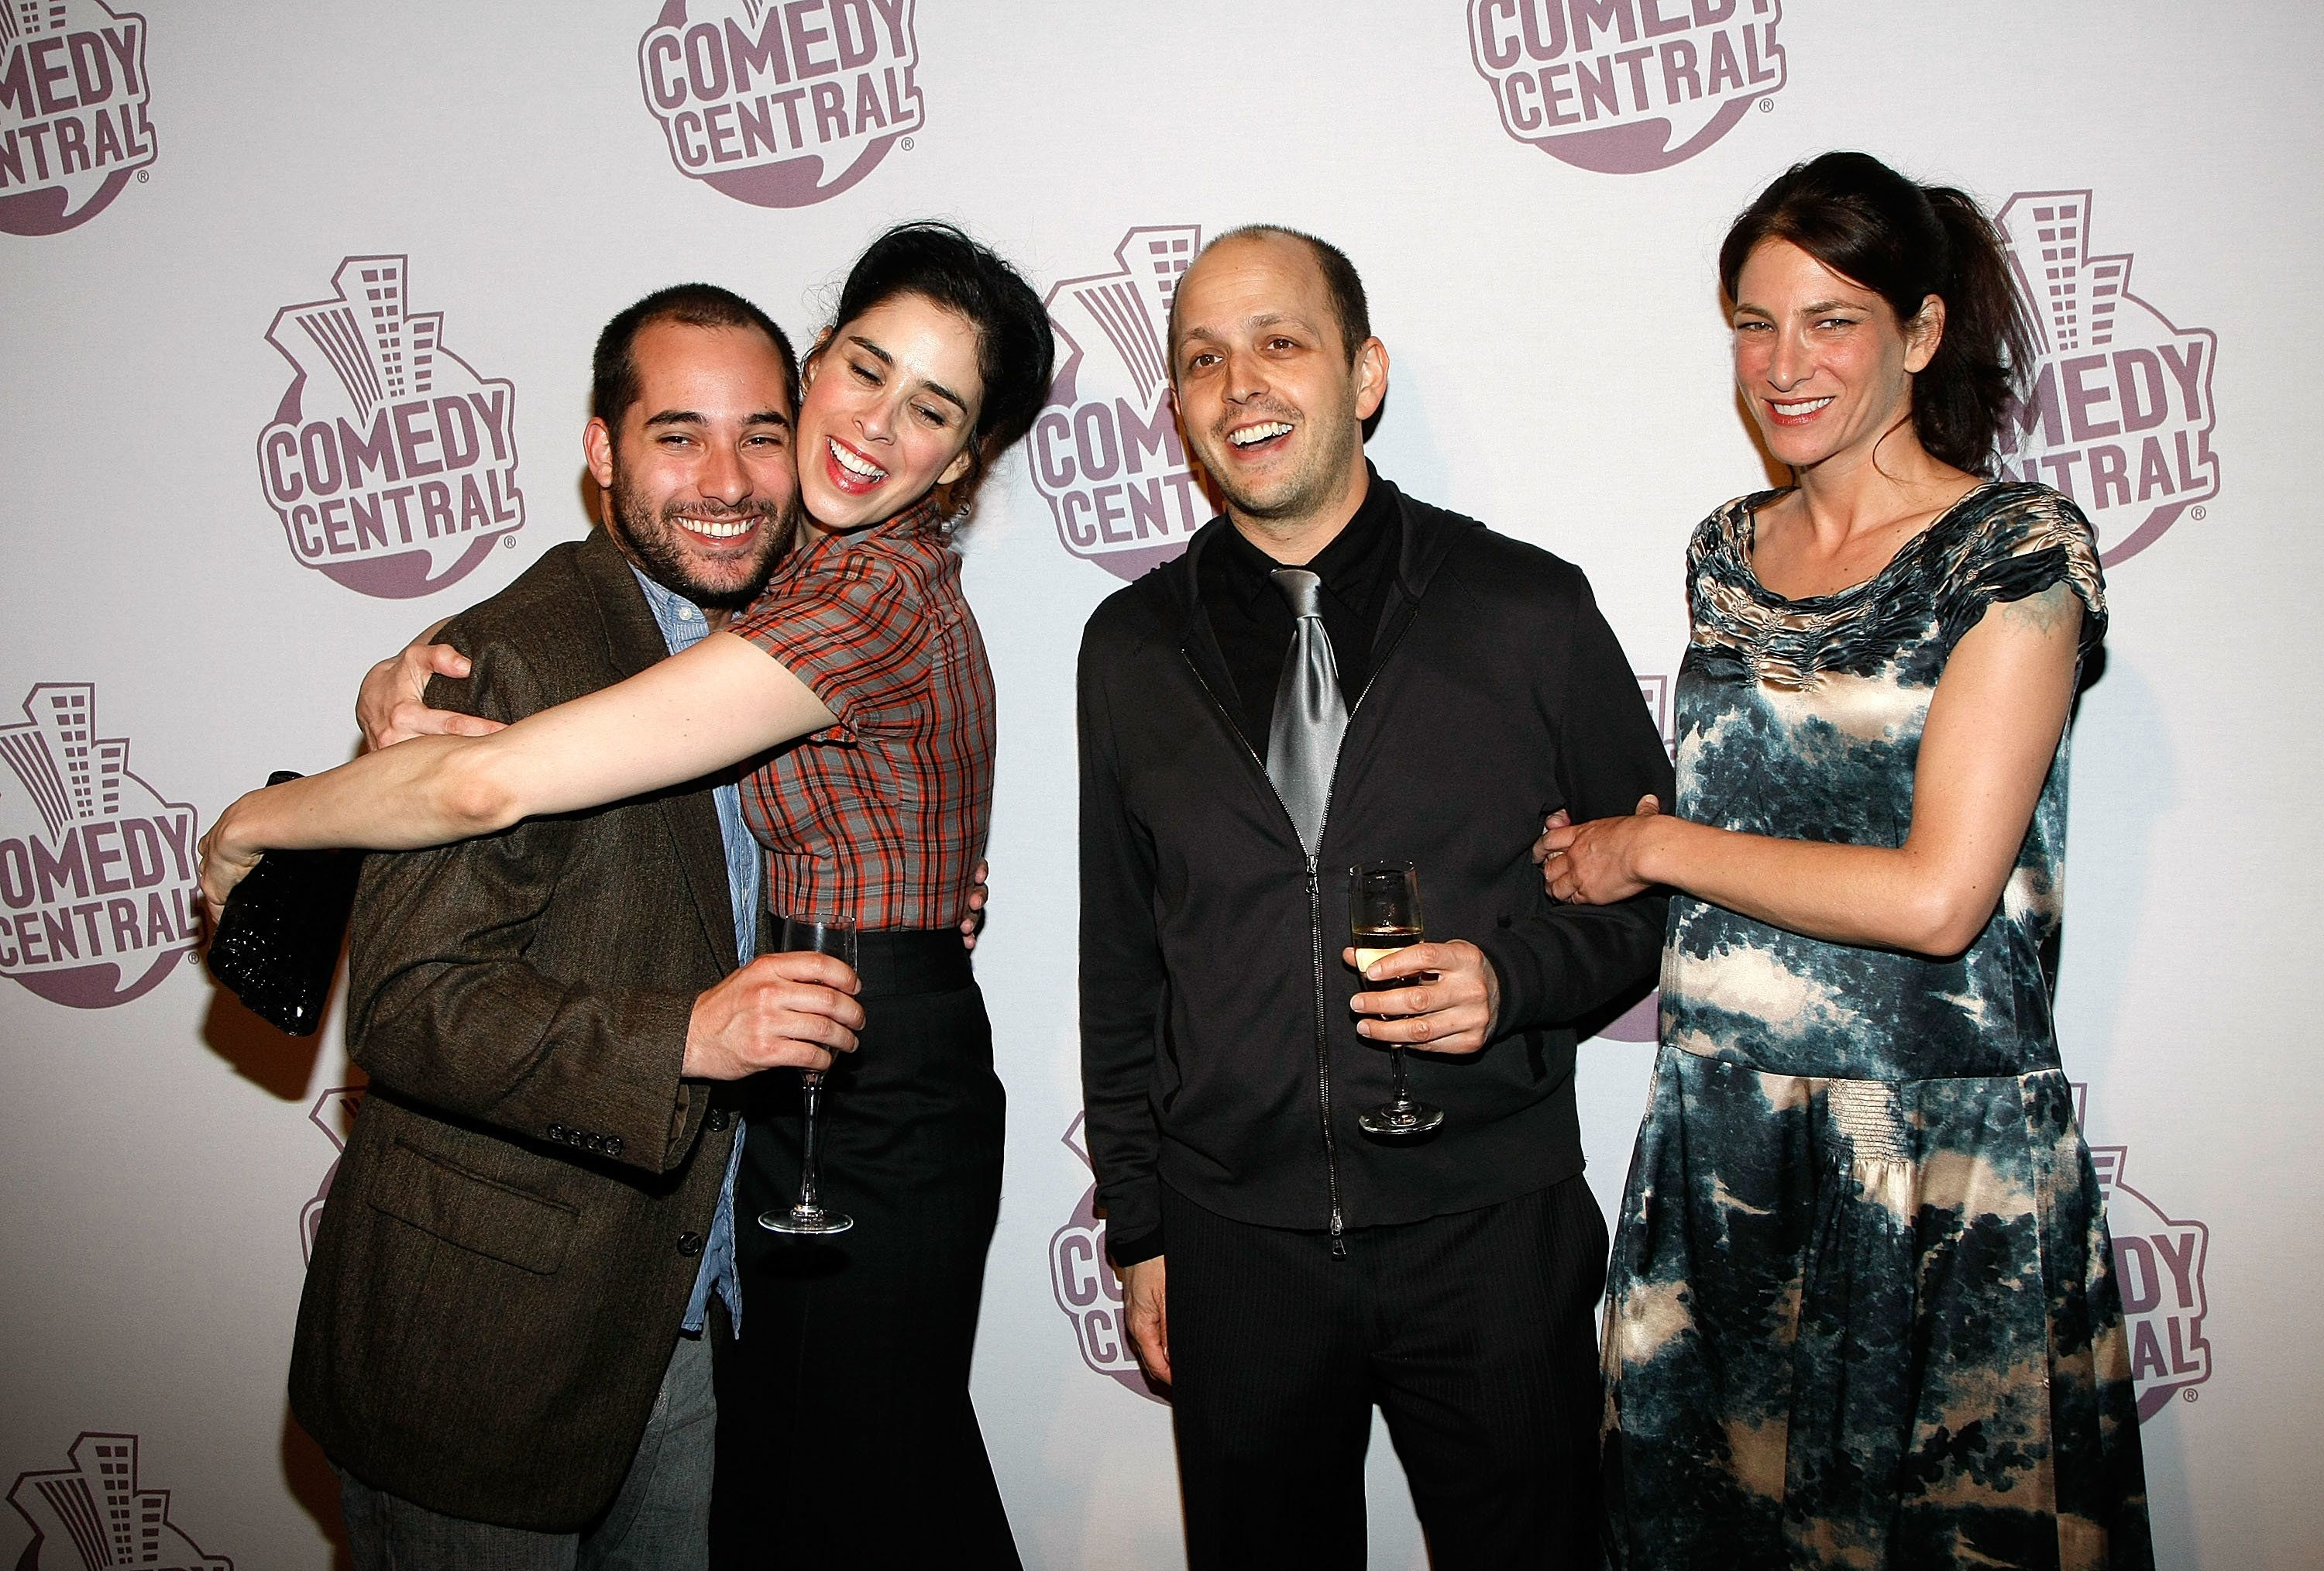 LOS ANGELES, CA - SEPTEMBER 21:  (L-R) 'The Sarah Silverman Program' writer Harris Wittels, comedian Sarah Silverman, executive producer/head writer Dan Sterling and actress Laura Silverman arrive at Comedy Central's Emmy Awards party at the STK restaurant September 21, 2008 in Los Angeles, California.  (Photo by Ethan Miller/Getty Images)